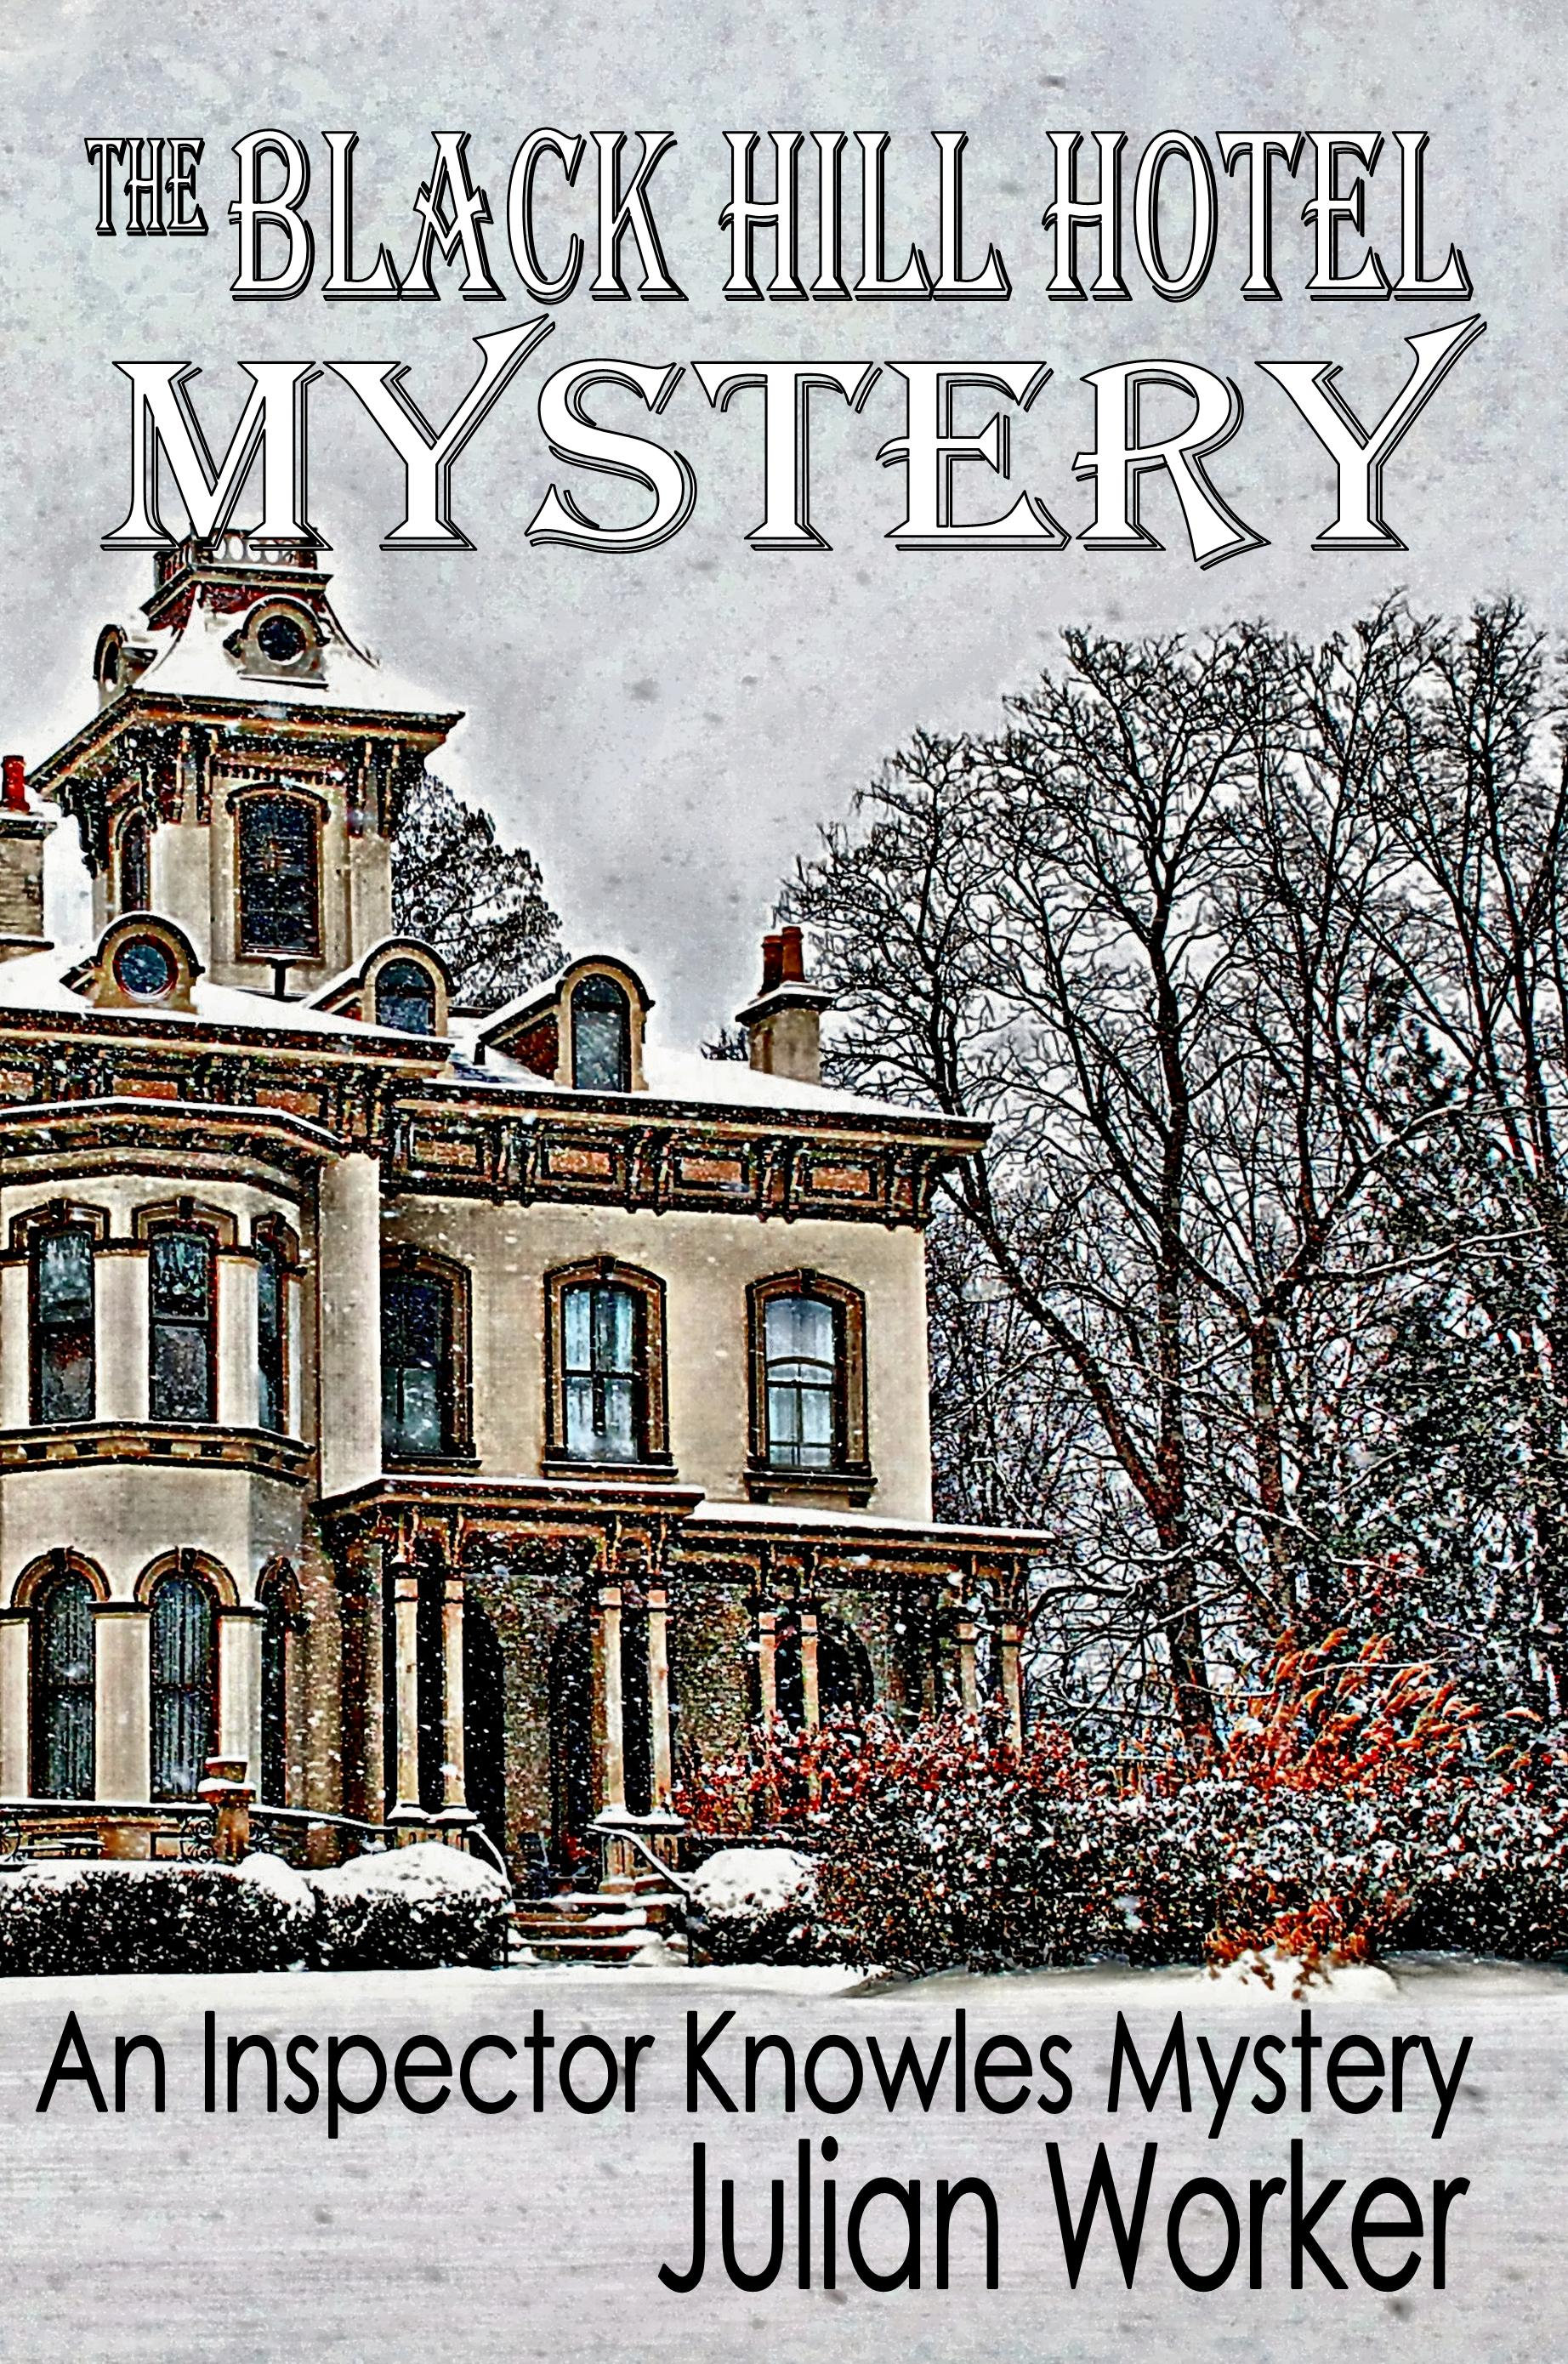 The Black Hill Hotel Mystery – 7